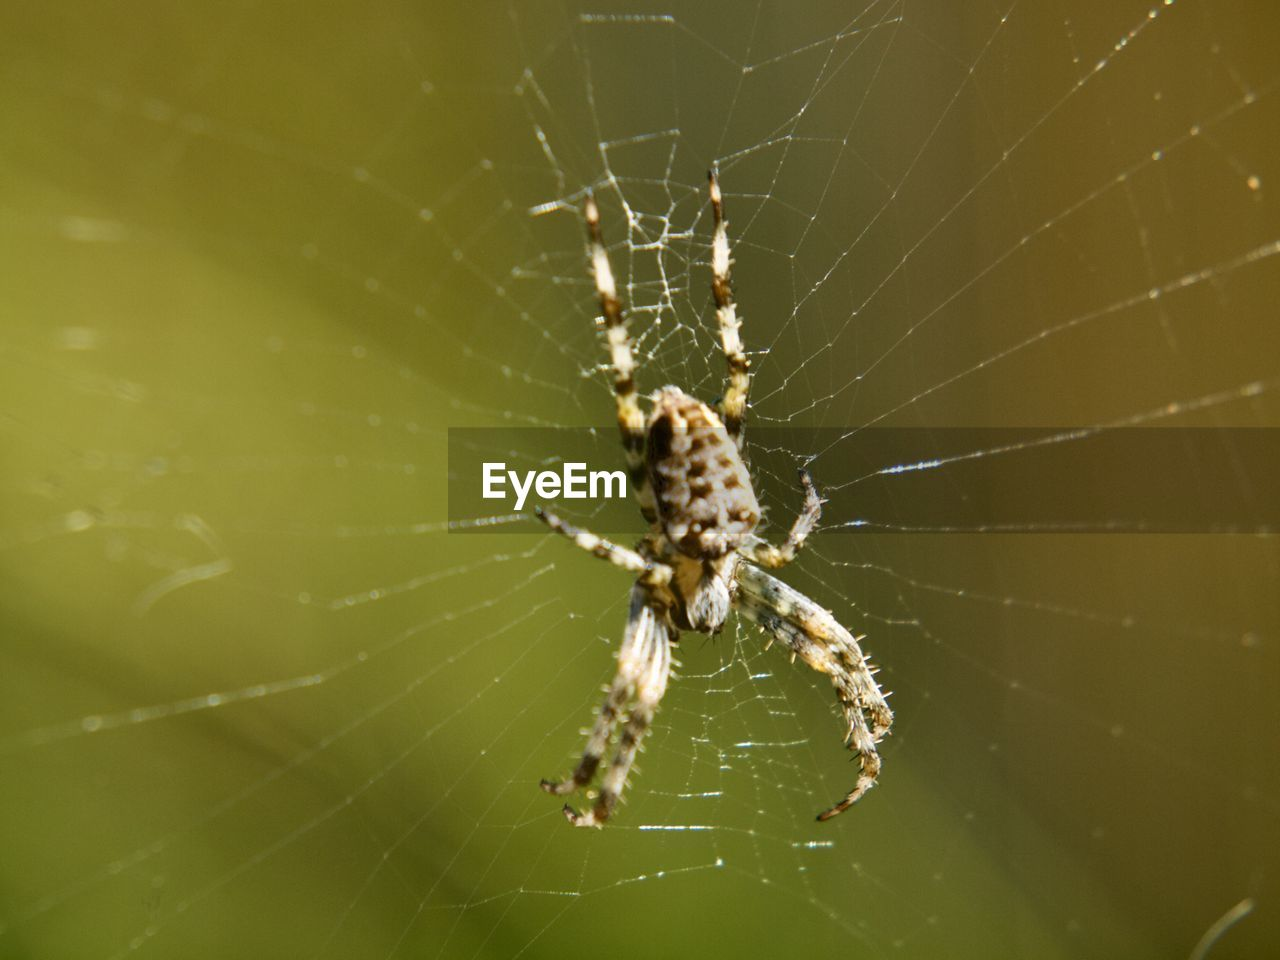 arachnid, spider web, spider, animal themes, invertebrate, arthropod, animals in the wild, one animal, animal, close-up, animal wildlife, insect, fragility, focus on foreground, vulnerability, survival, zoology, no people, day, nature, web, outdoors, animal leg, complexity